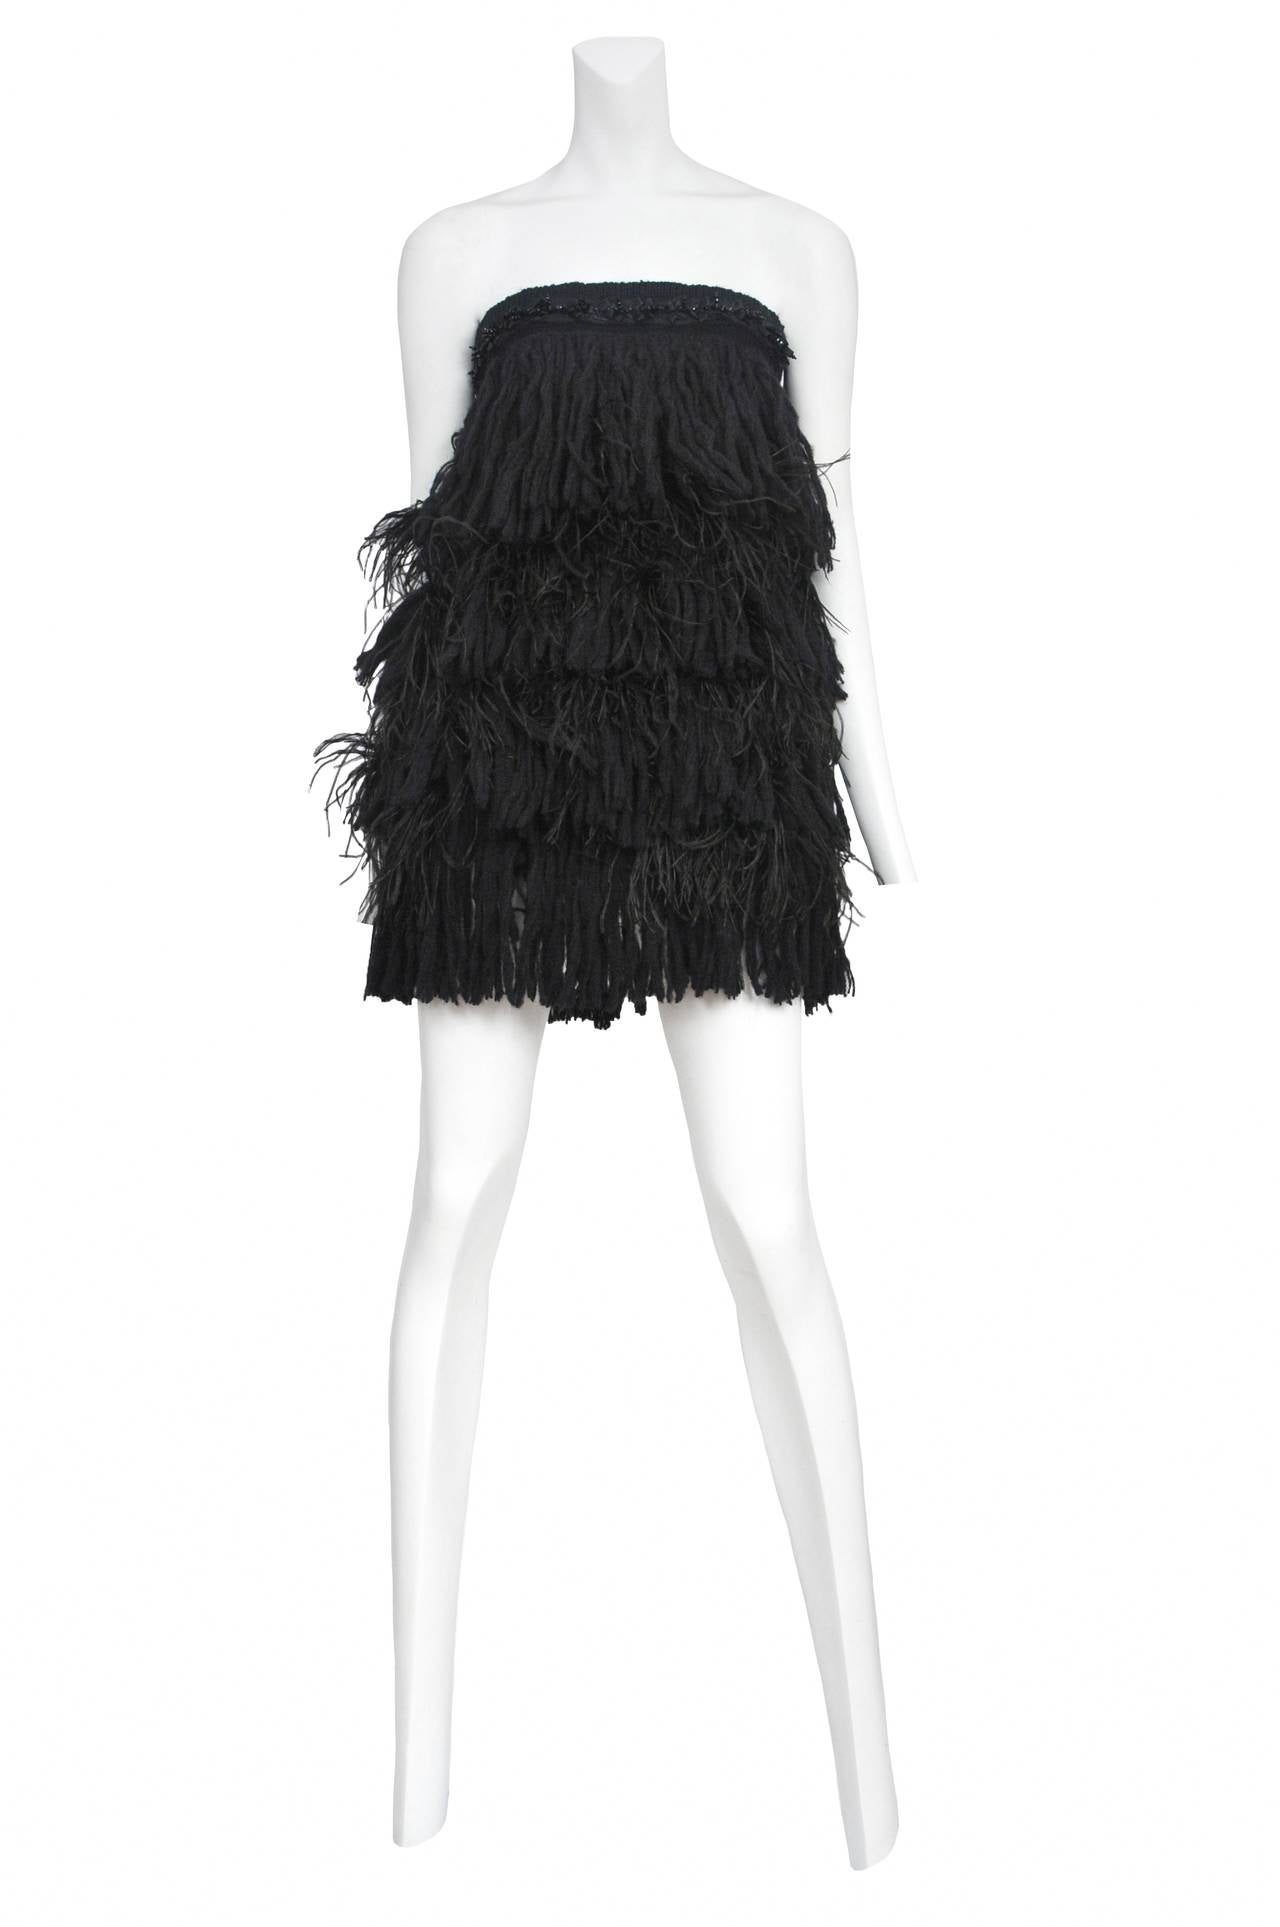 Vintage Christian Lacriox feather and cotton fringe strapless mini with matching leather armbands.